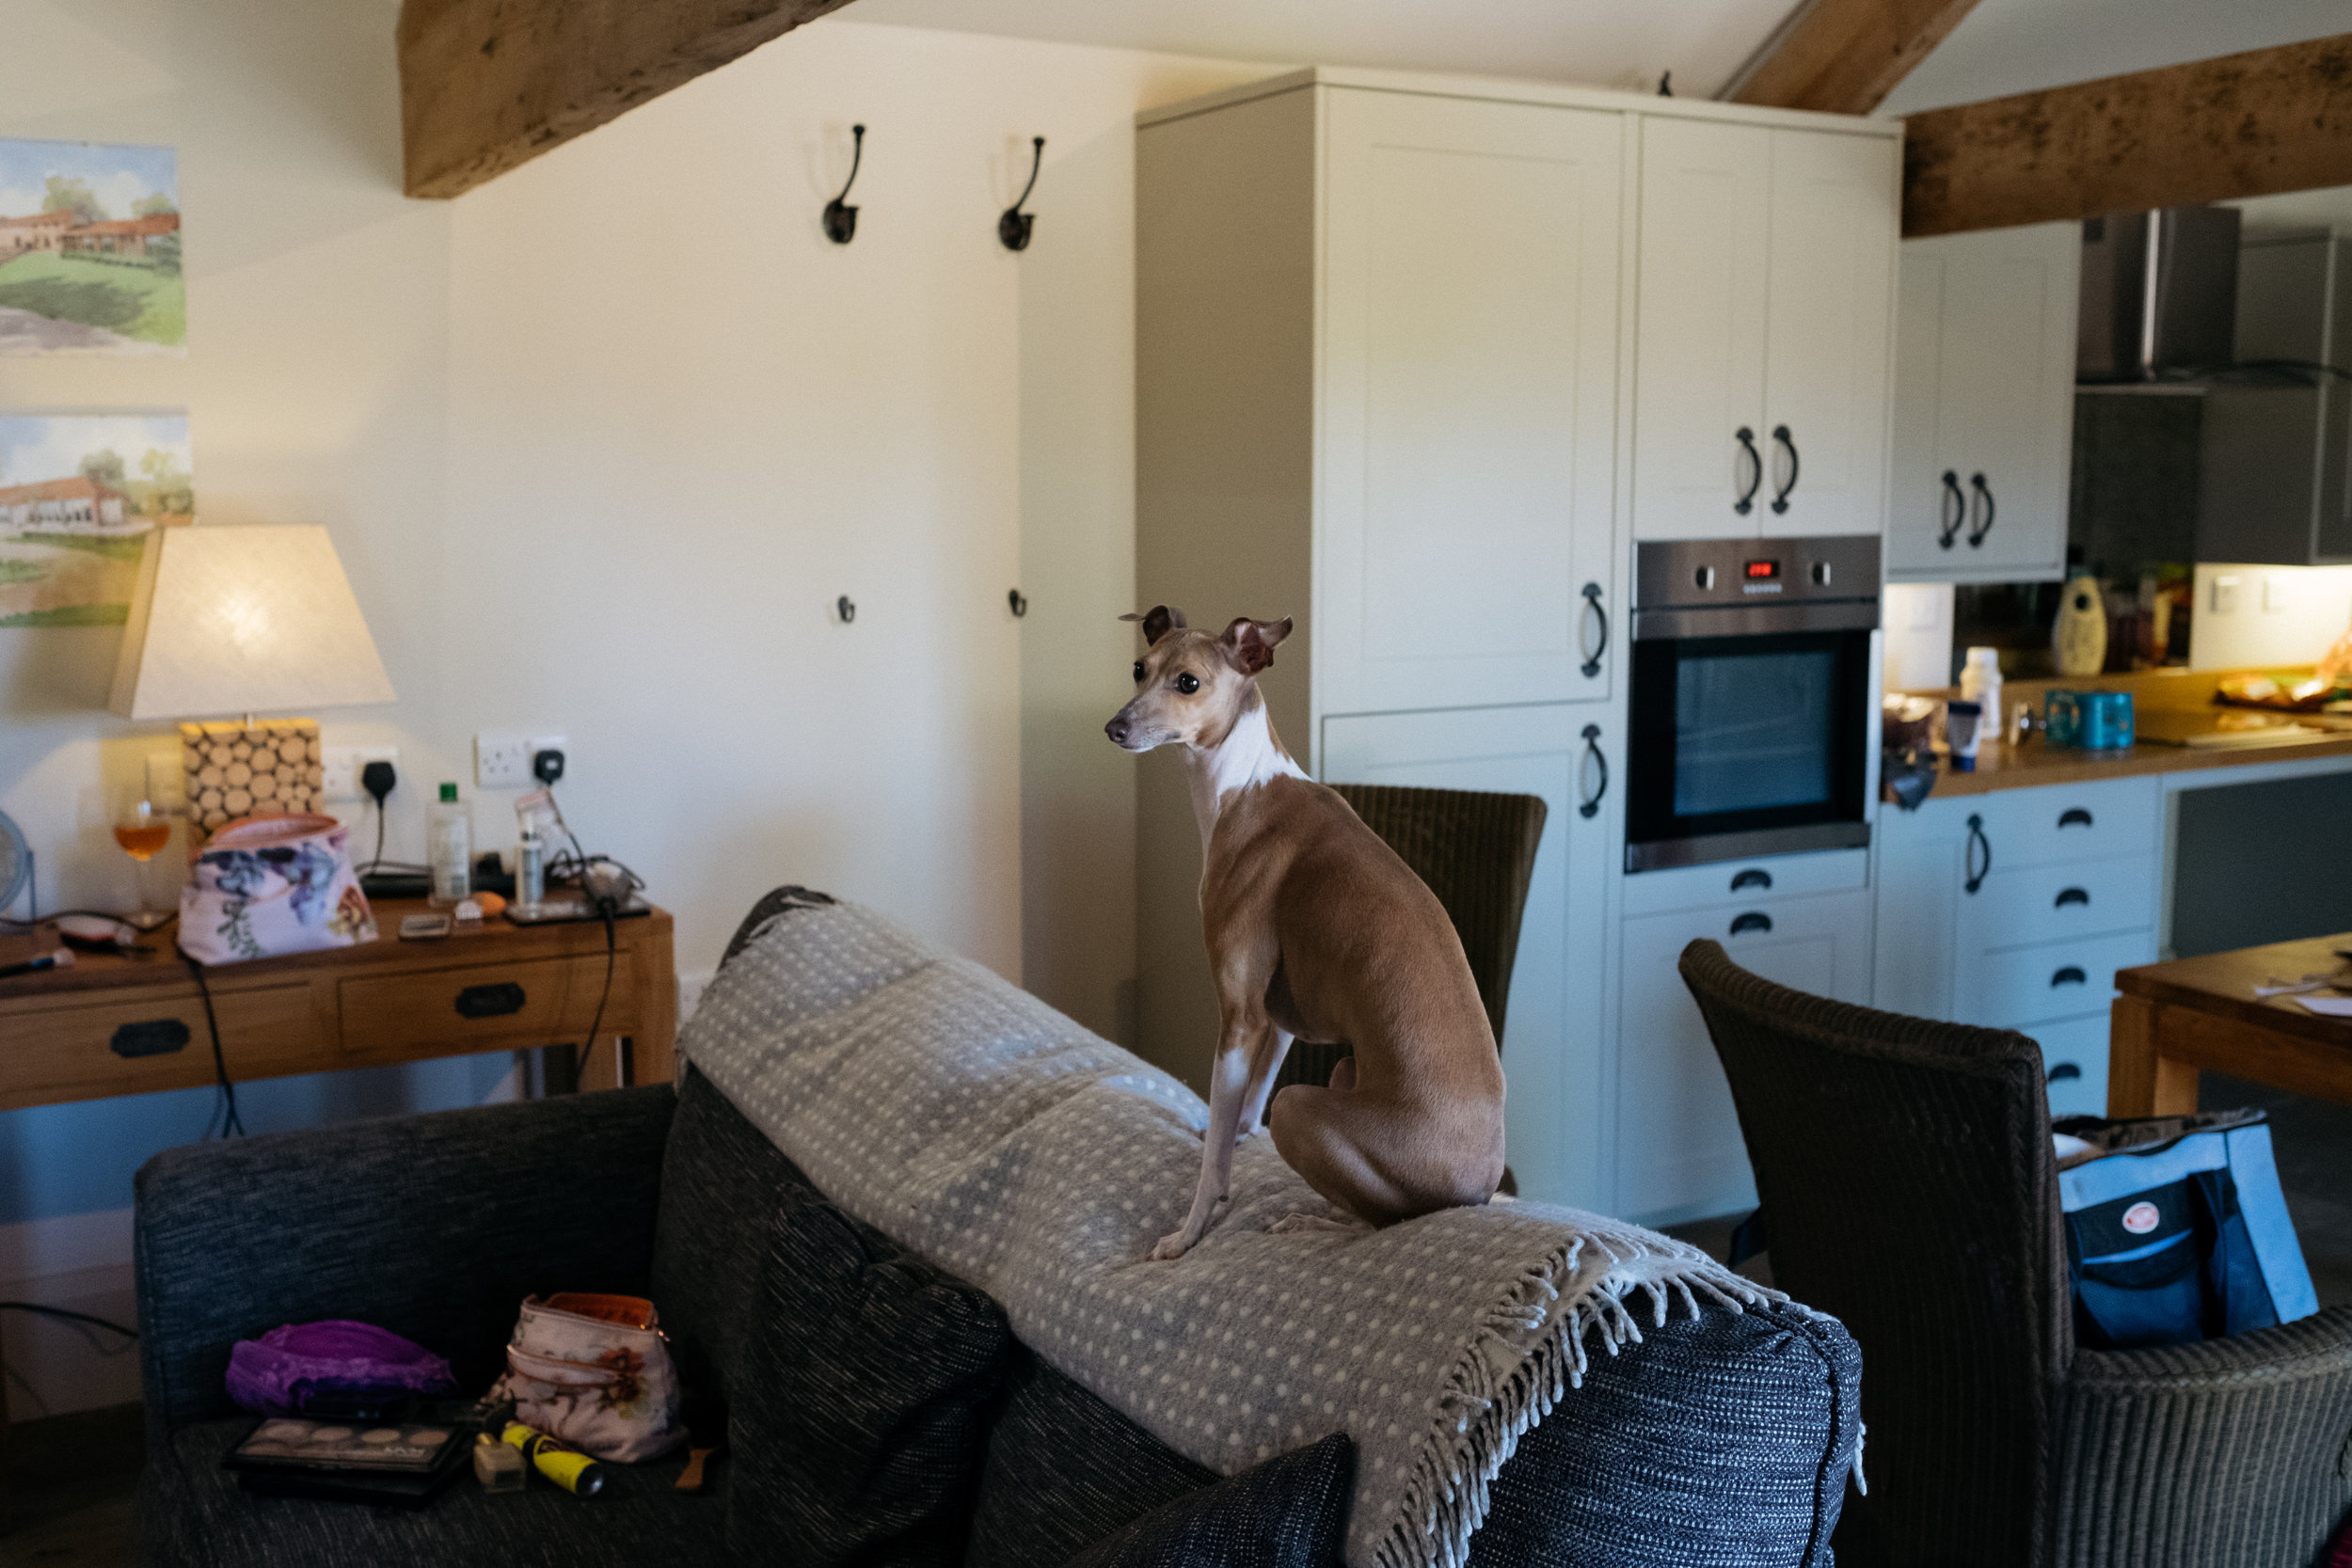 Italian greyhound sat on the back of the sofa